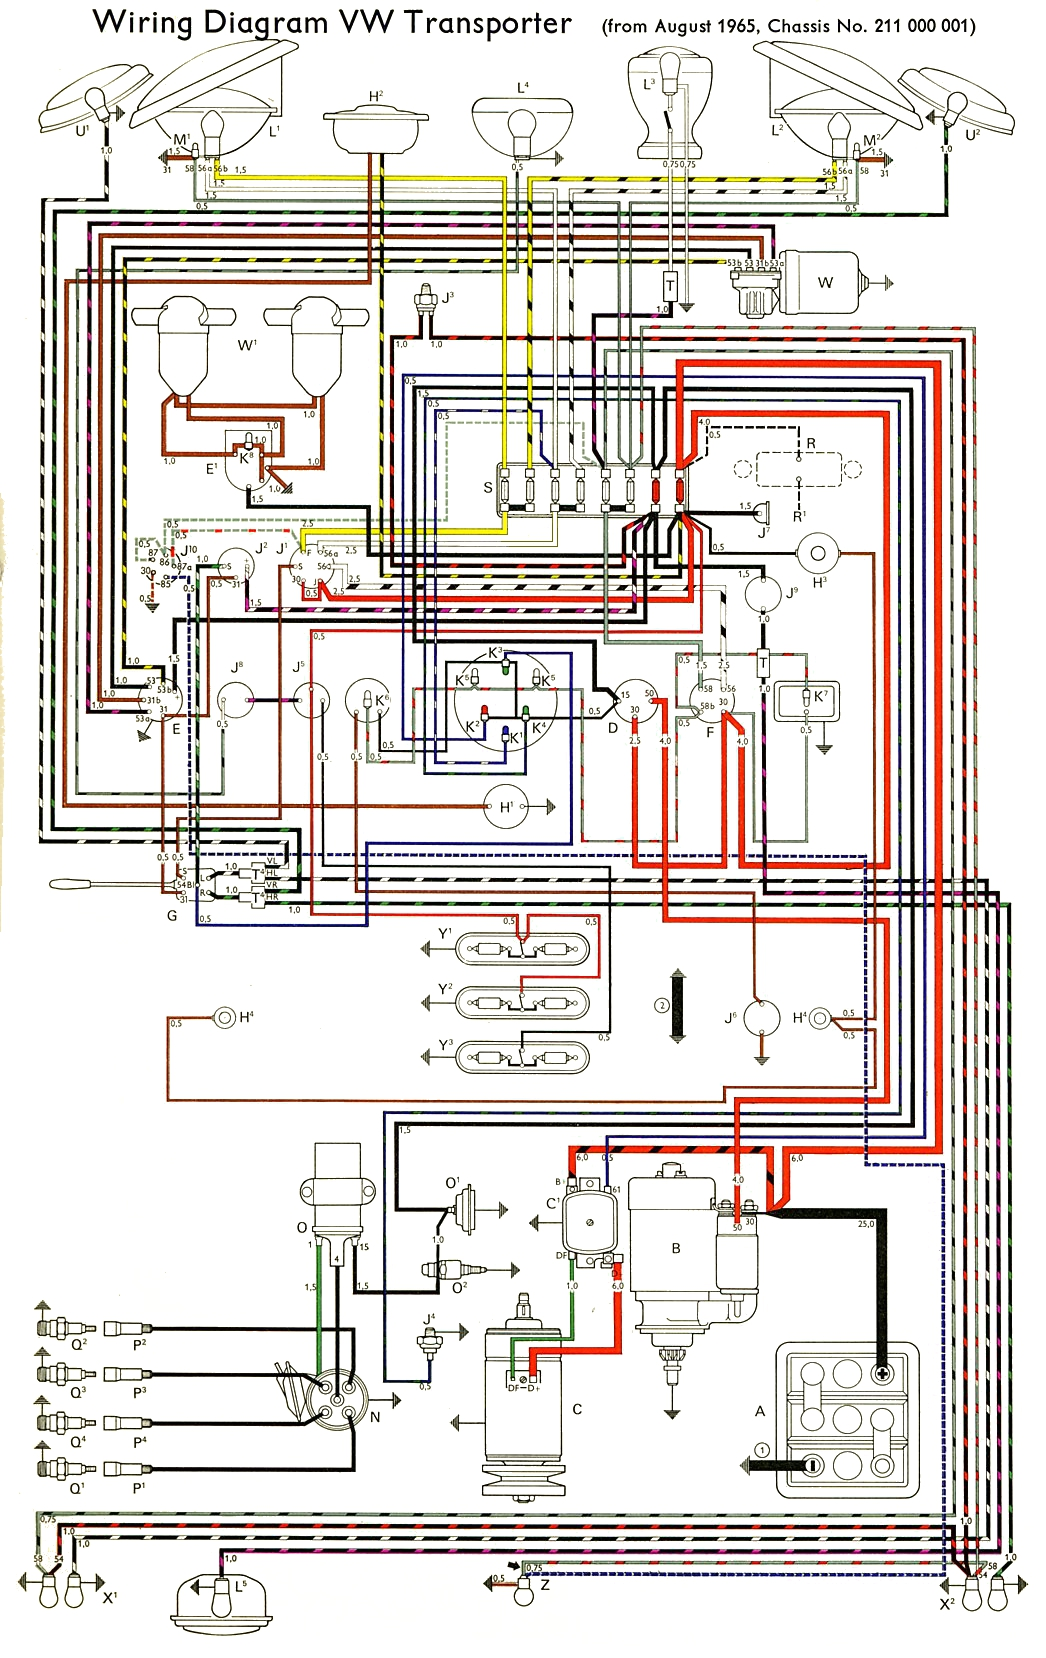 bus_66 electrical wiring diagrams beetle 1971 electrical wiring vw t5 rear light wiring diagram at reclaimingppi.co